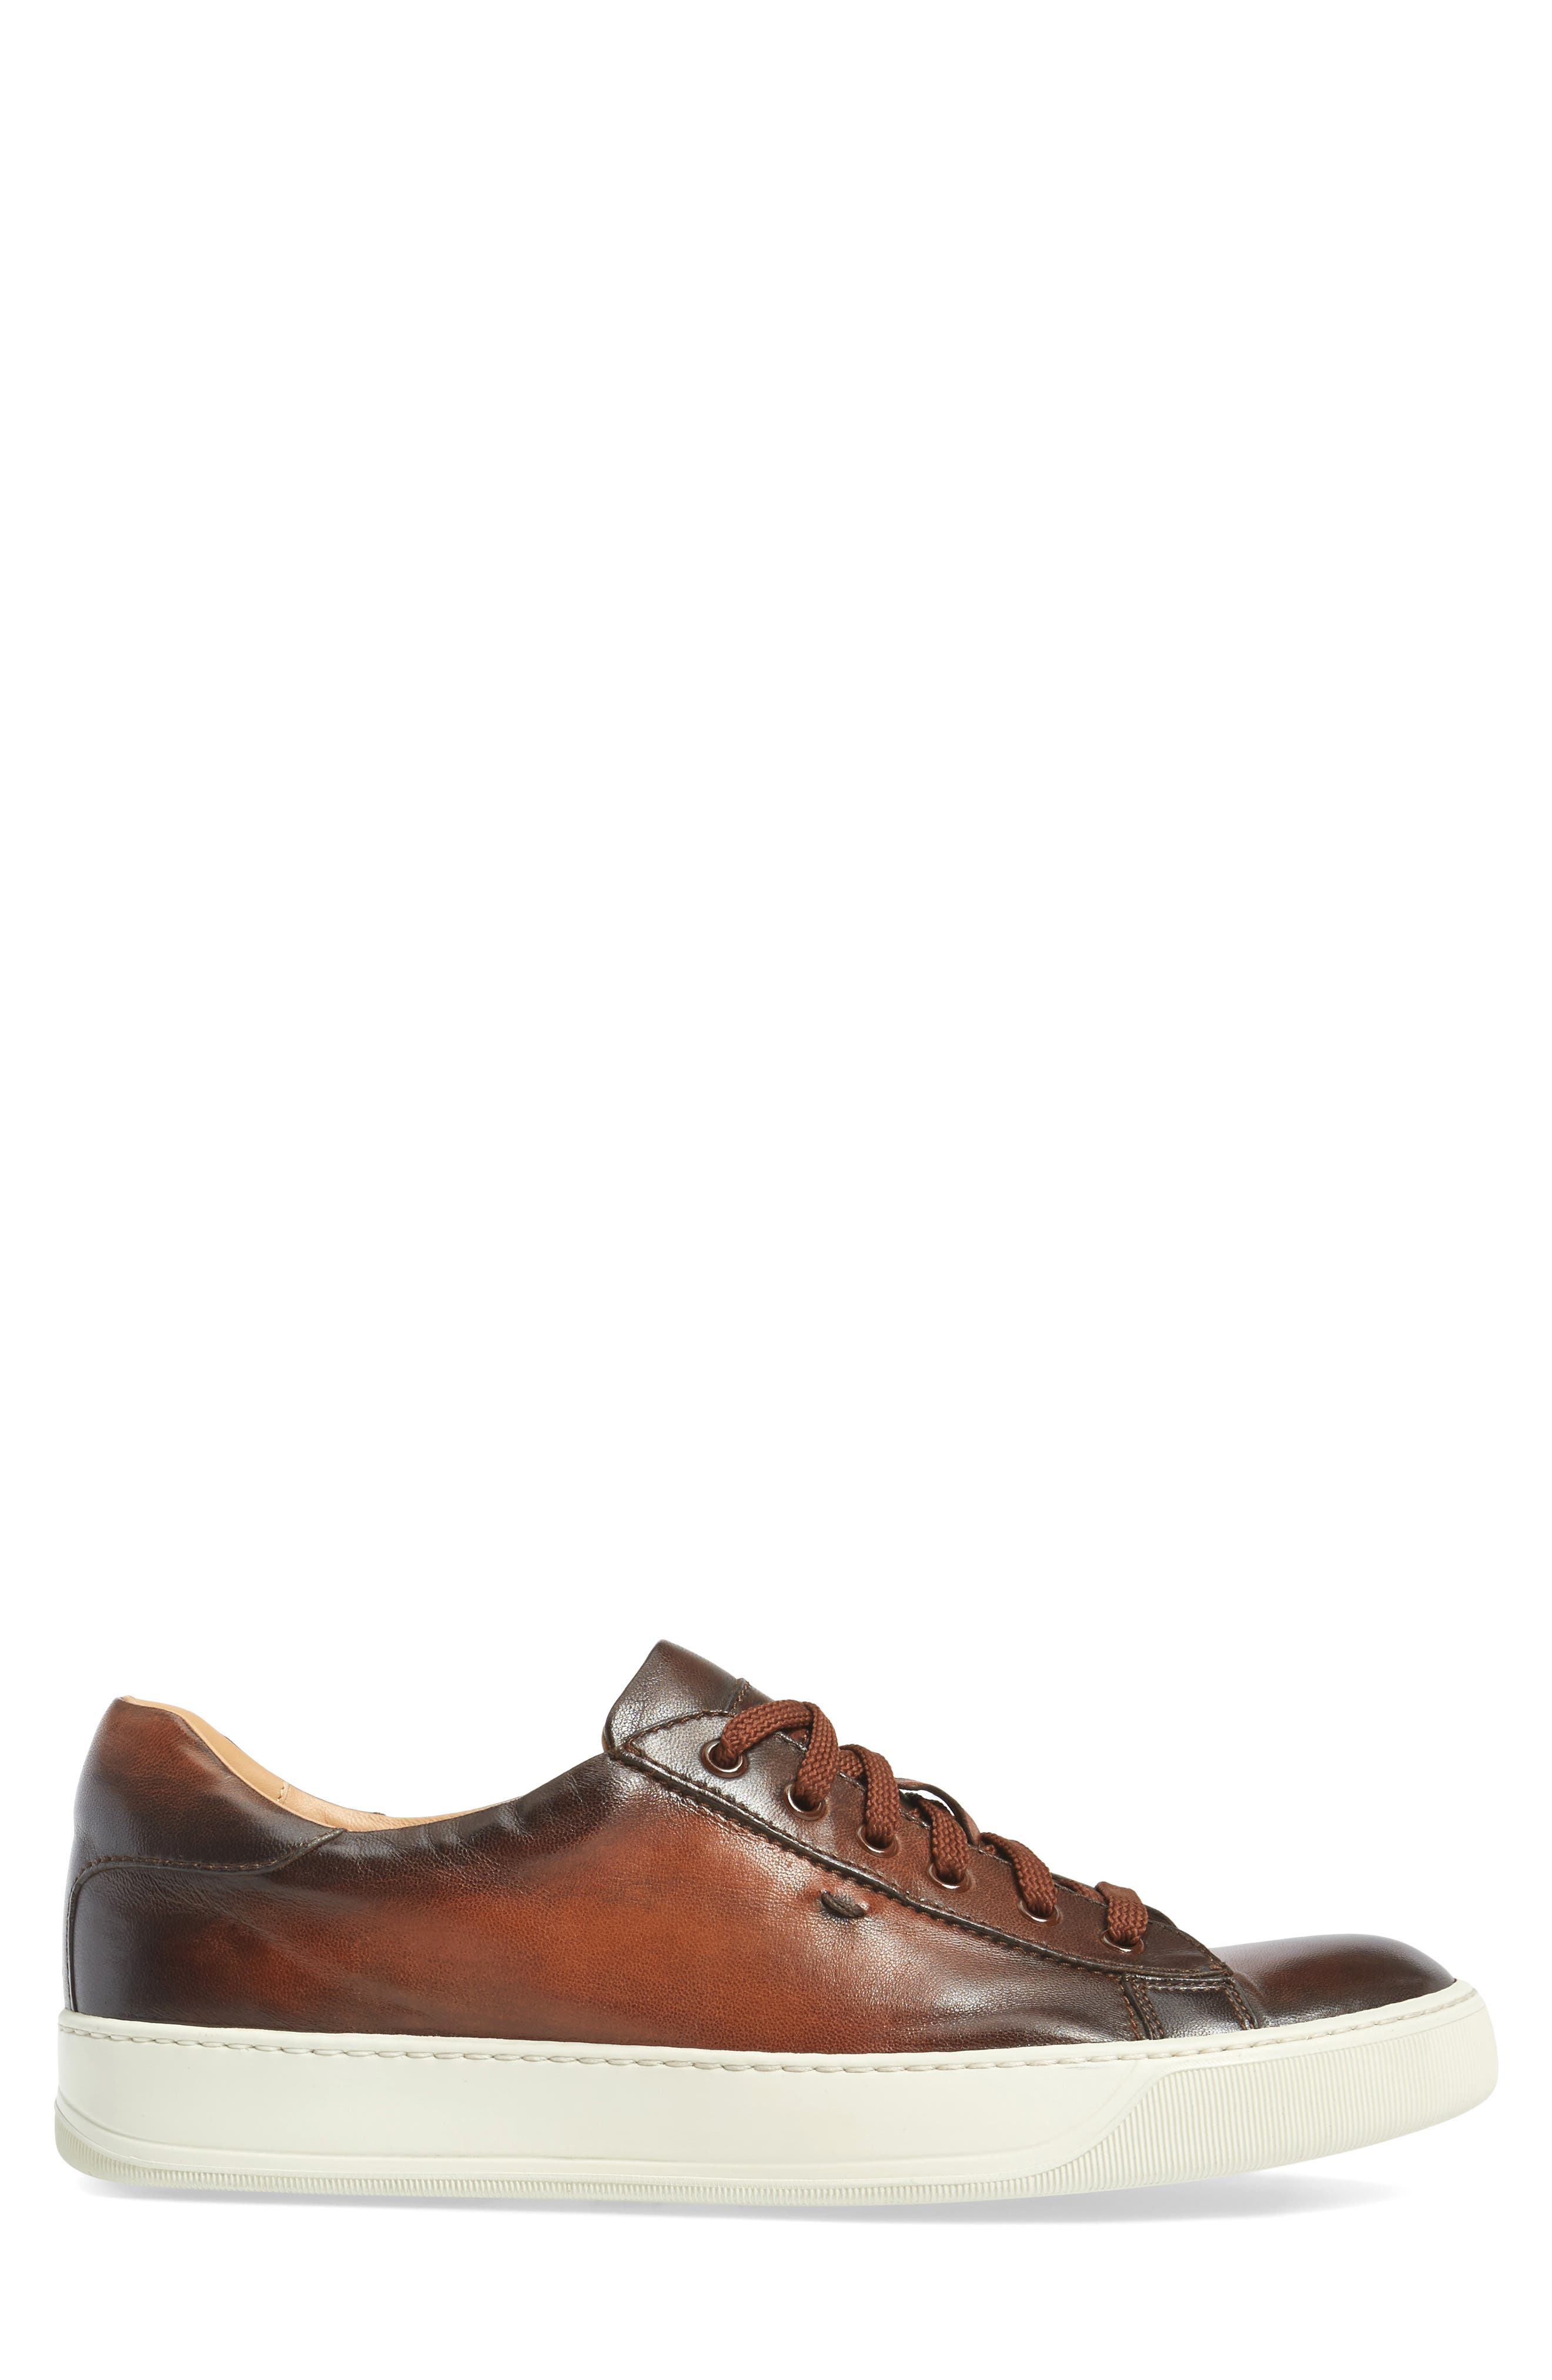 'Apache' Lace-Up Sneaker,                             Alternate thumbnail 3, color,                             Brown